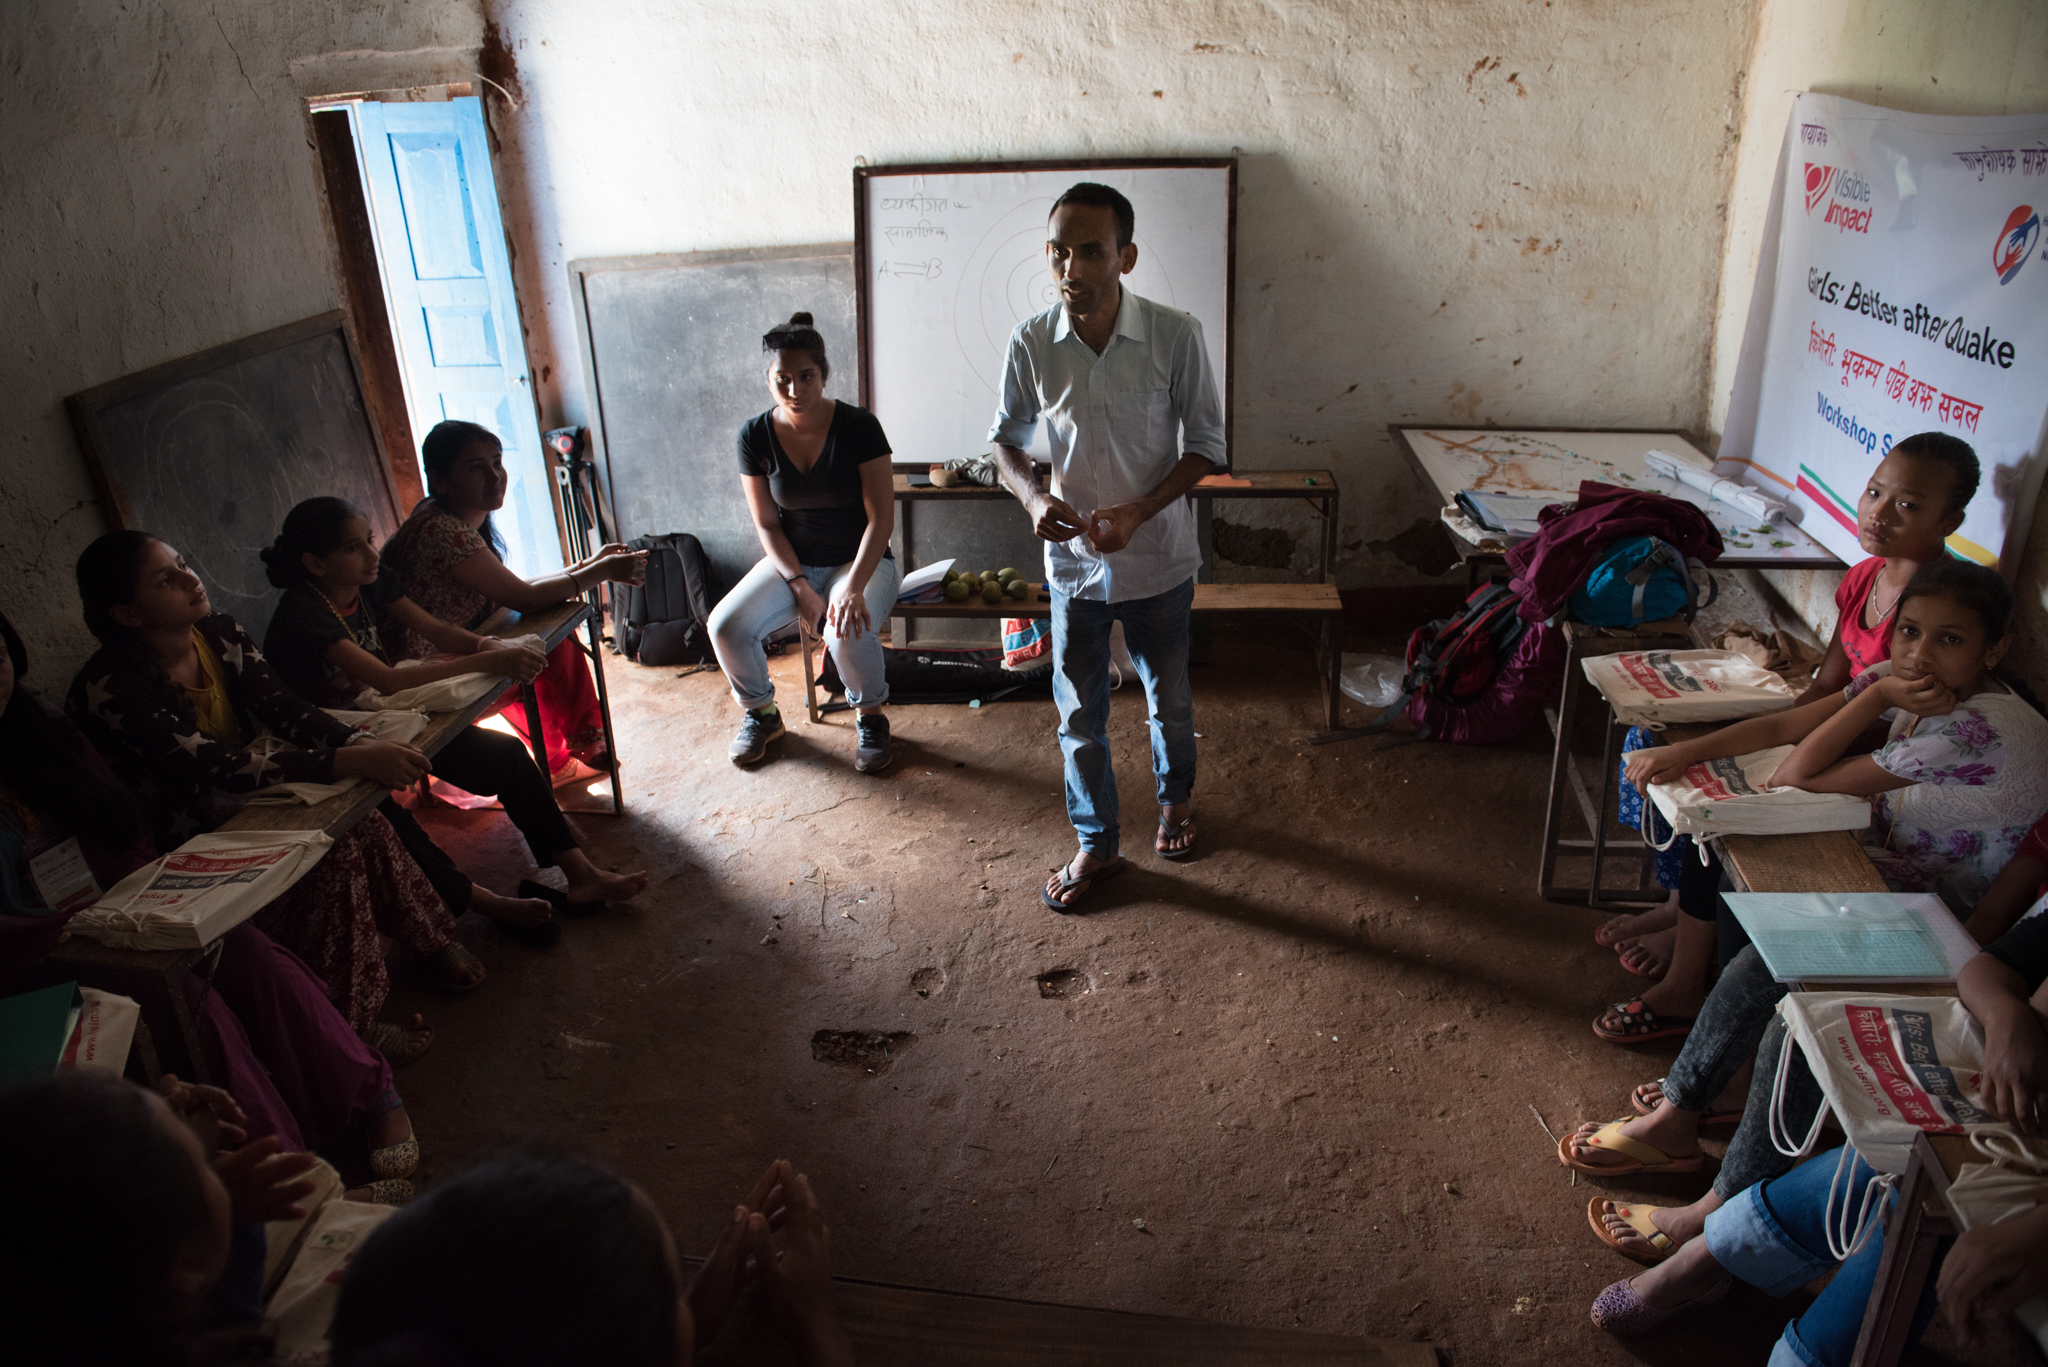 Accountability Lab's Suresh Chand and Samita Thapa talk to 15 girls at a school house in Nuwakot, Nepal about accountability and integrity. (Photo by Brittany Wait)